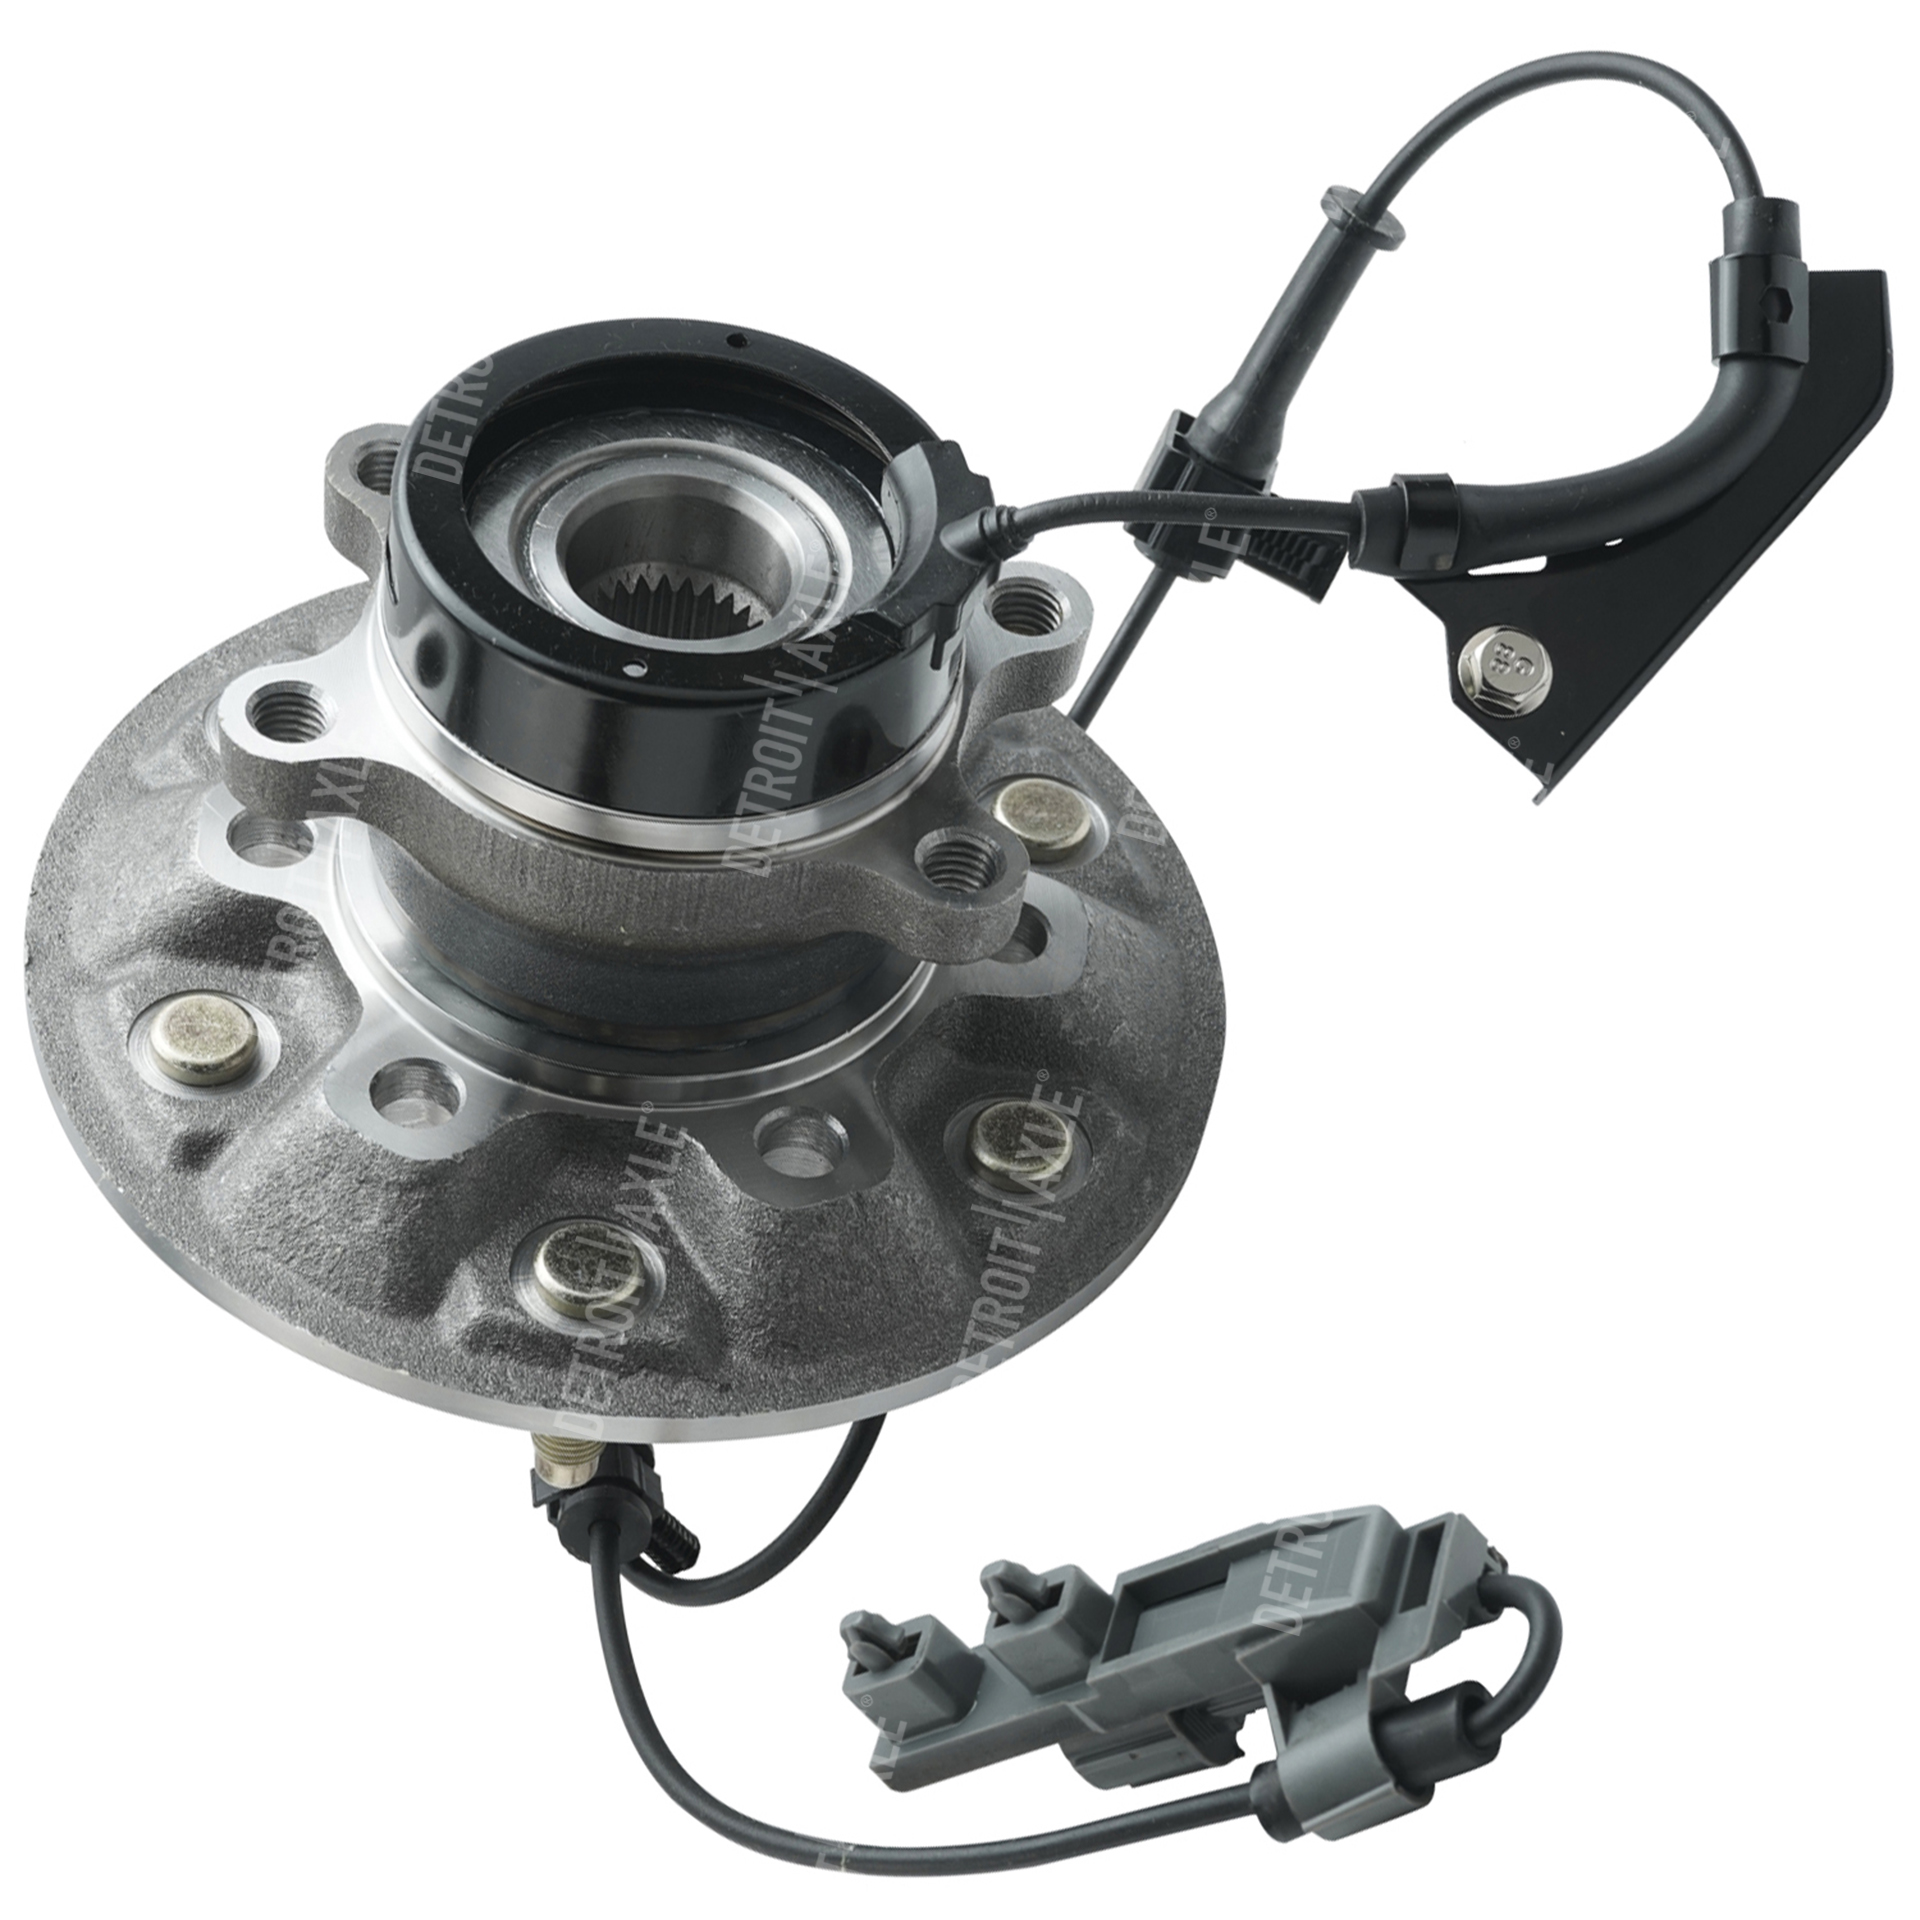 4x4 Front Axle Assembly : Front wheel hub and bearing assembly driver side fits